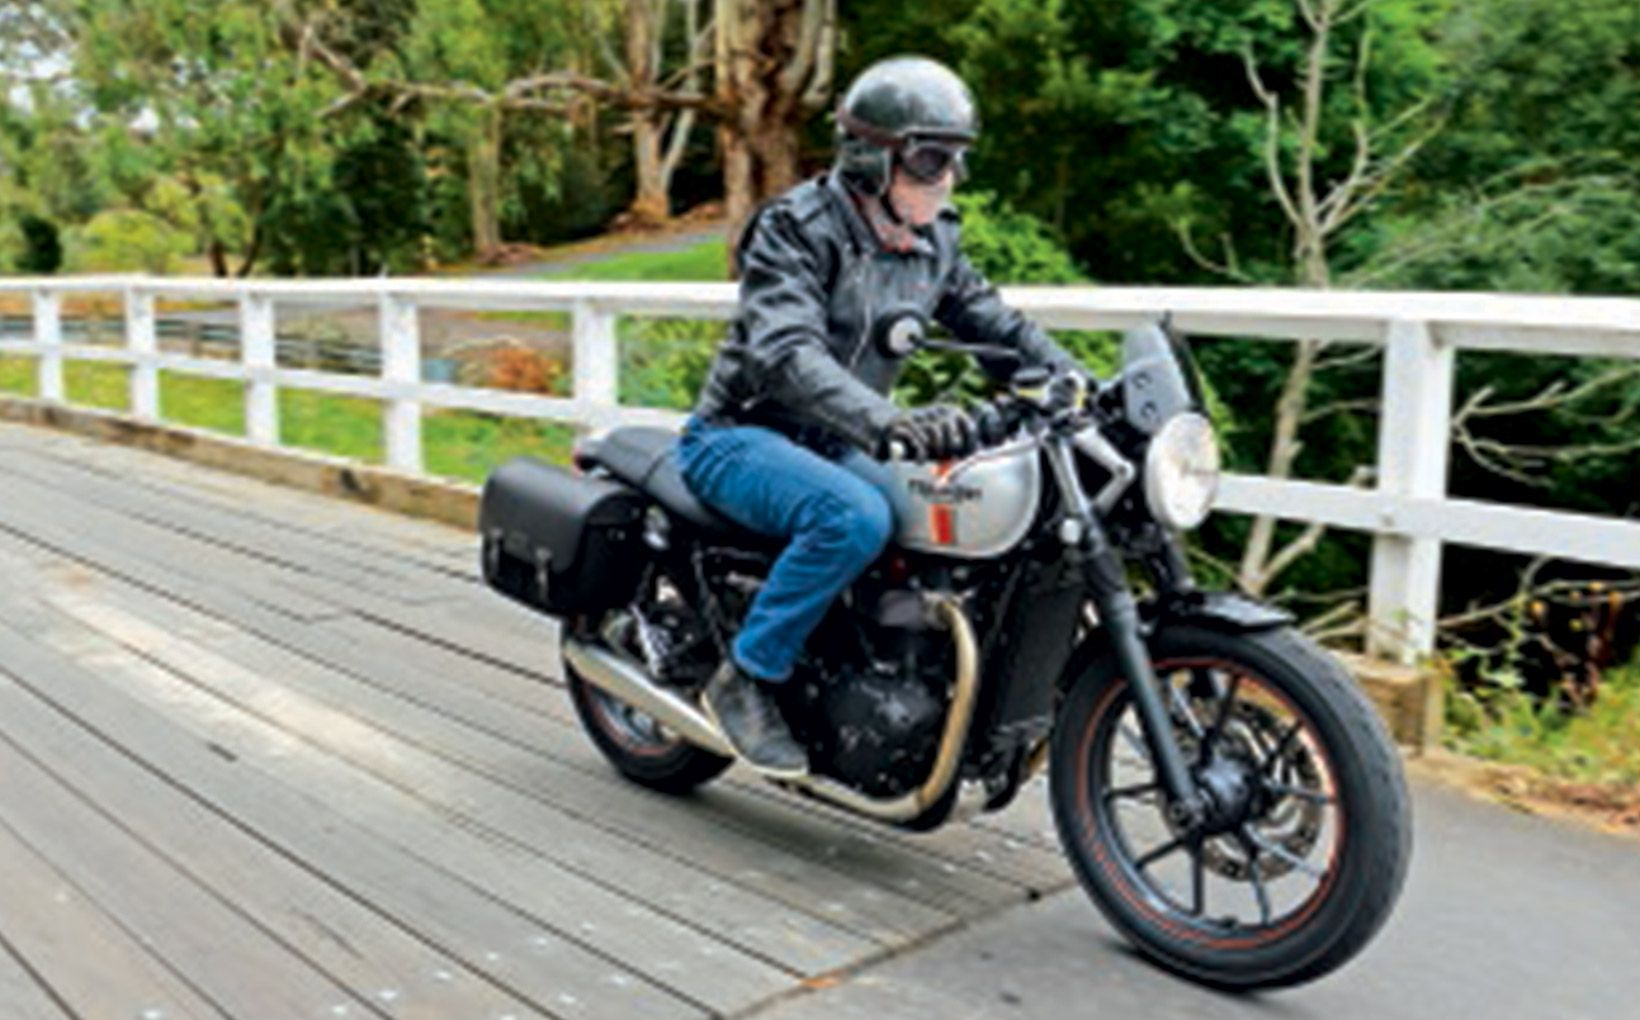 Triumph Street Twin The Bonnie Lives On With The Water Shannons Club